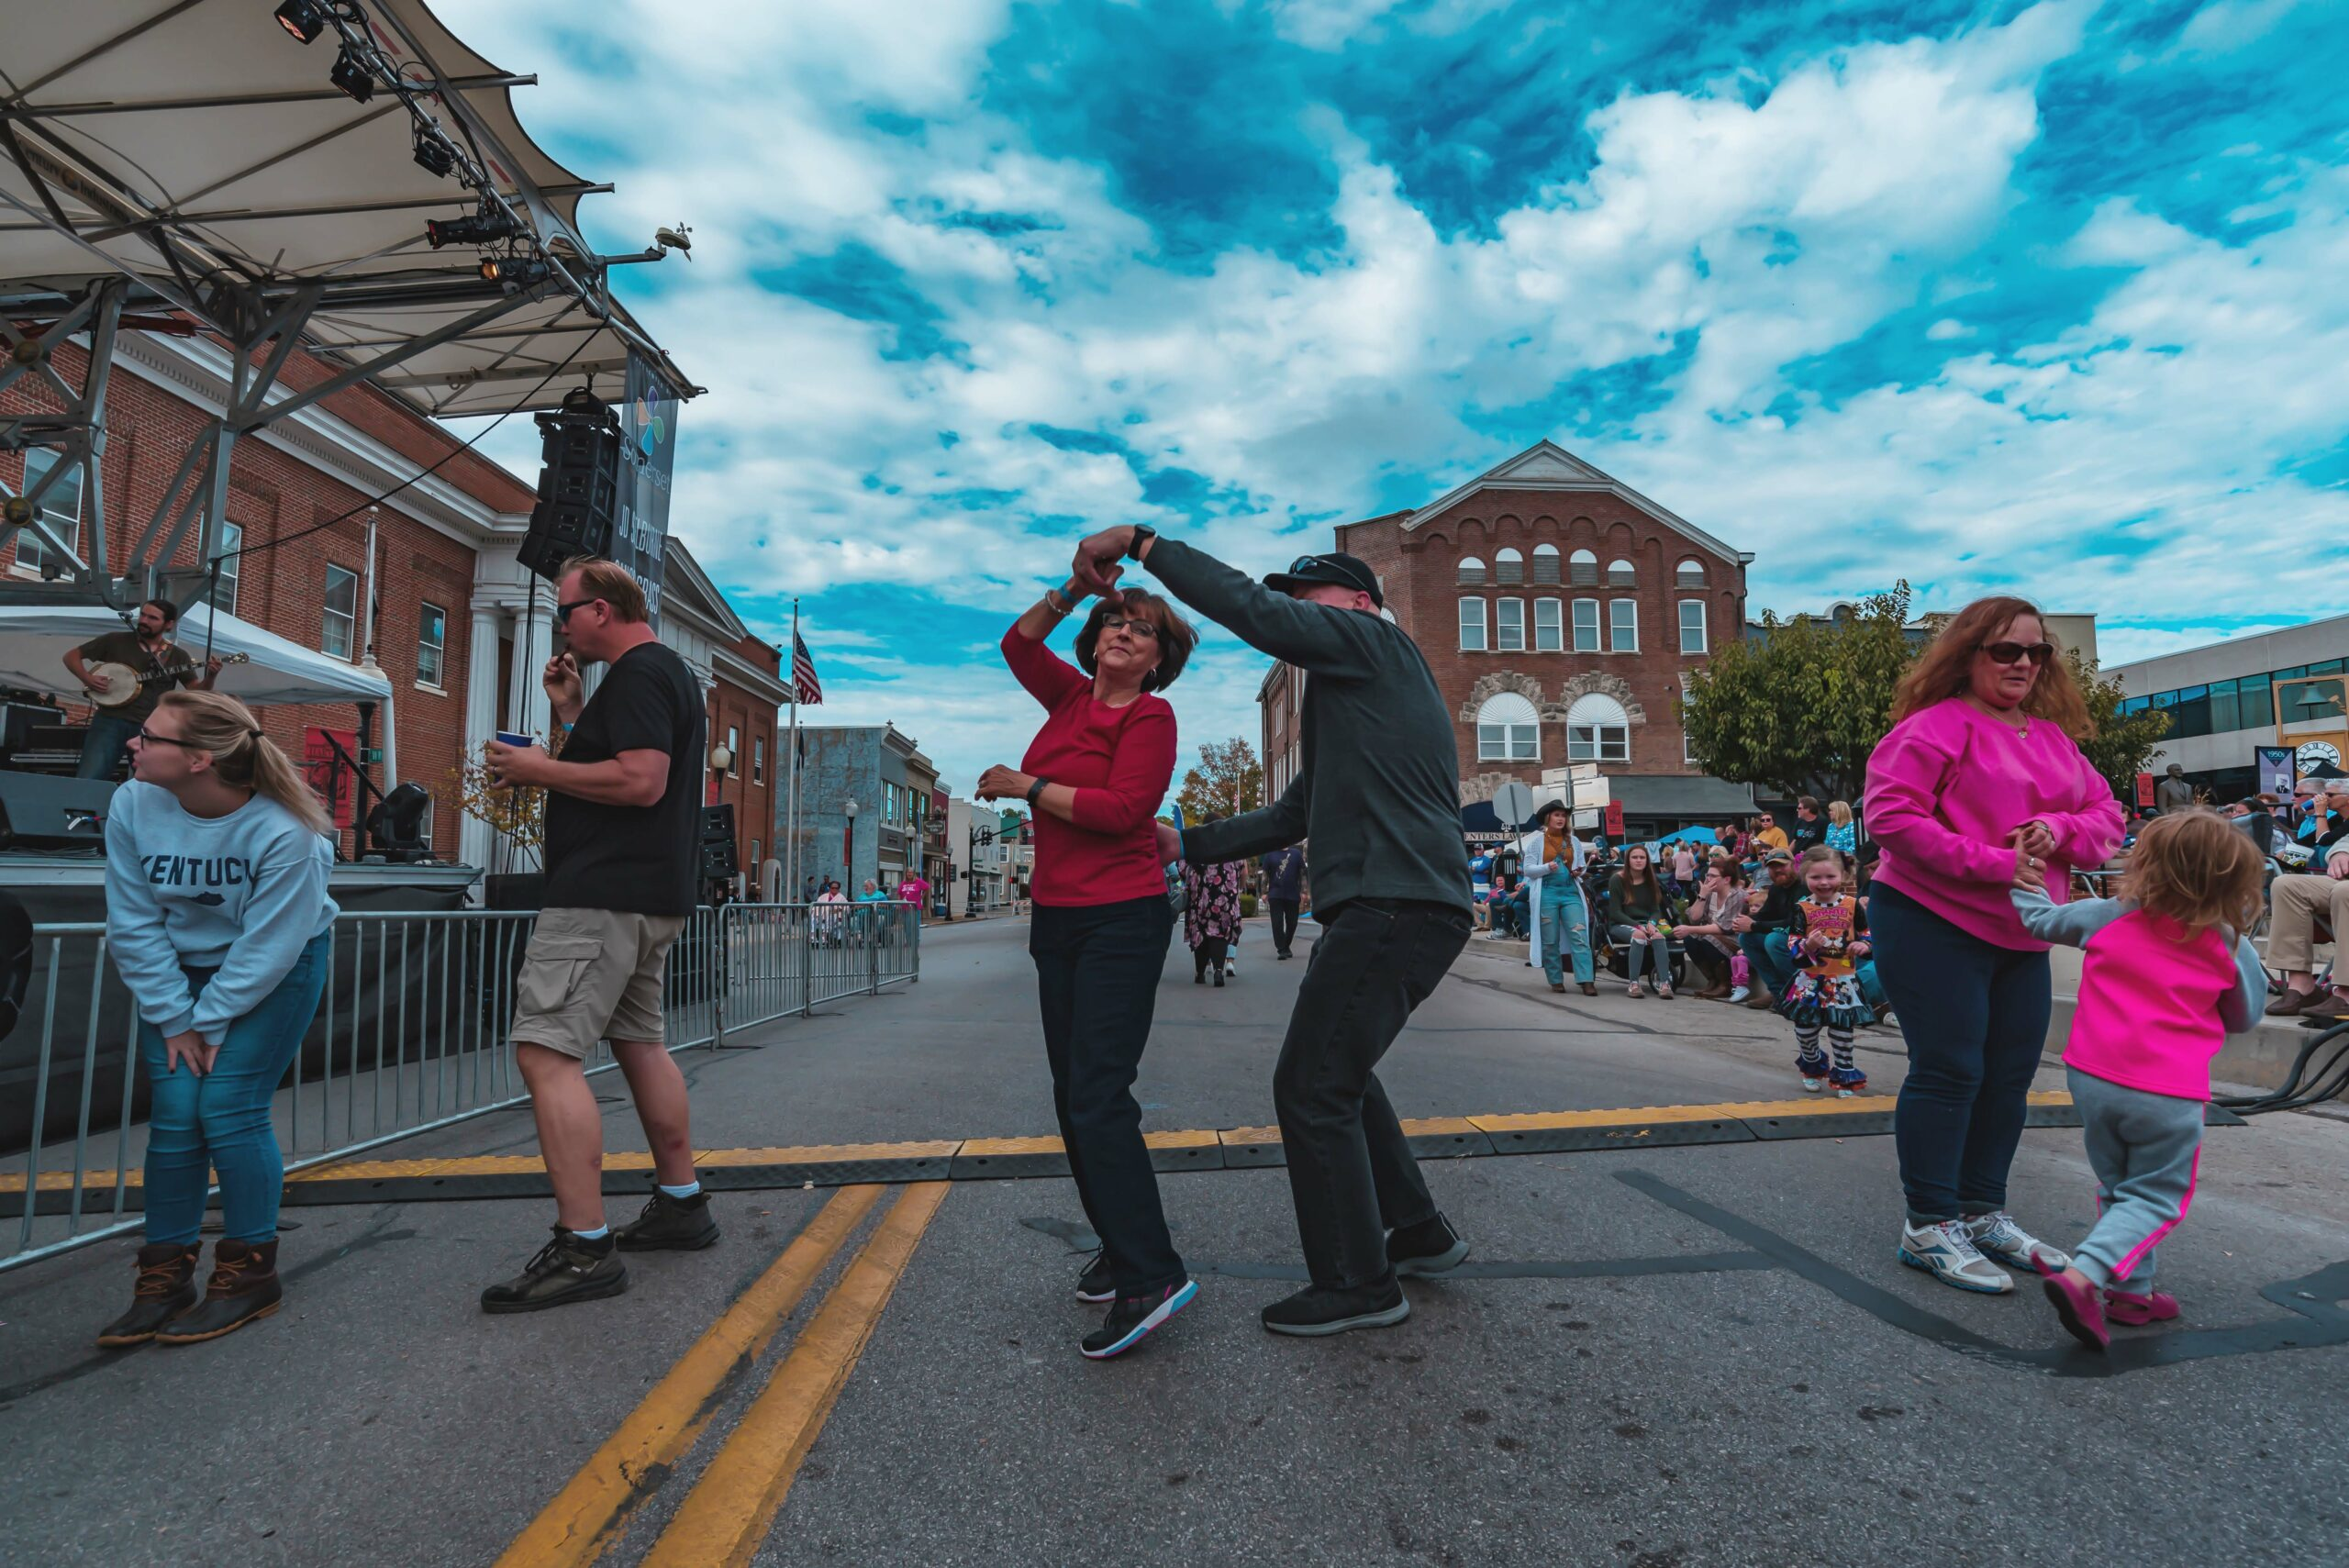 man twirling woman in the middle of street during festival